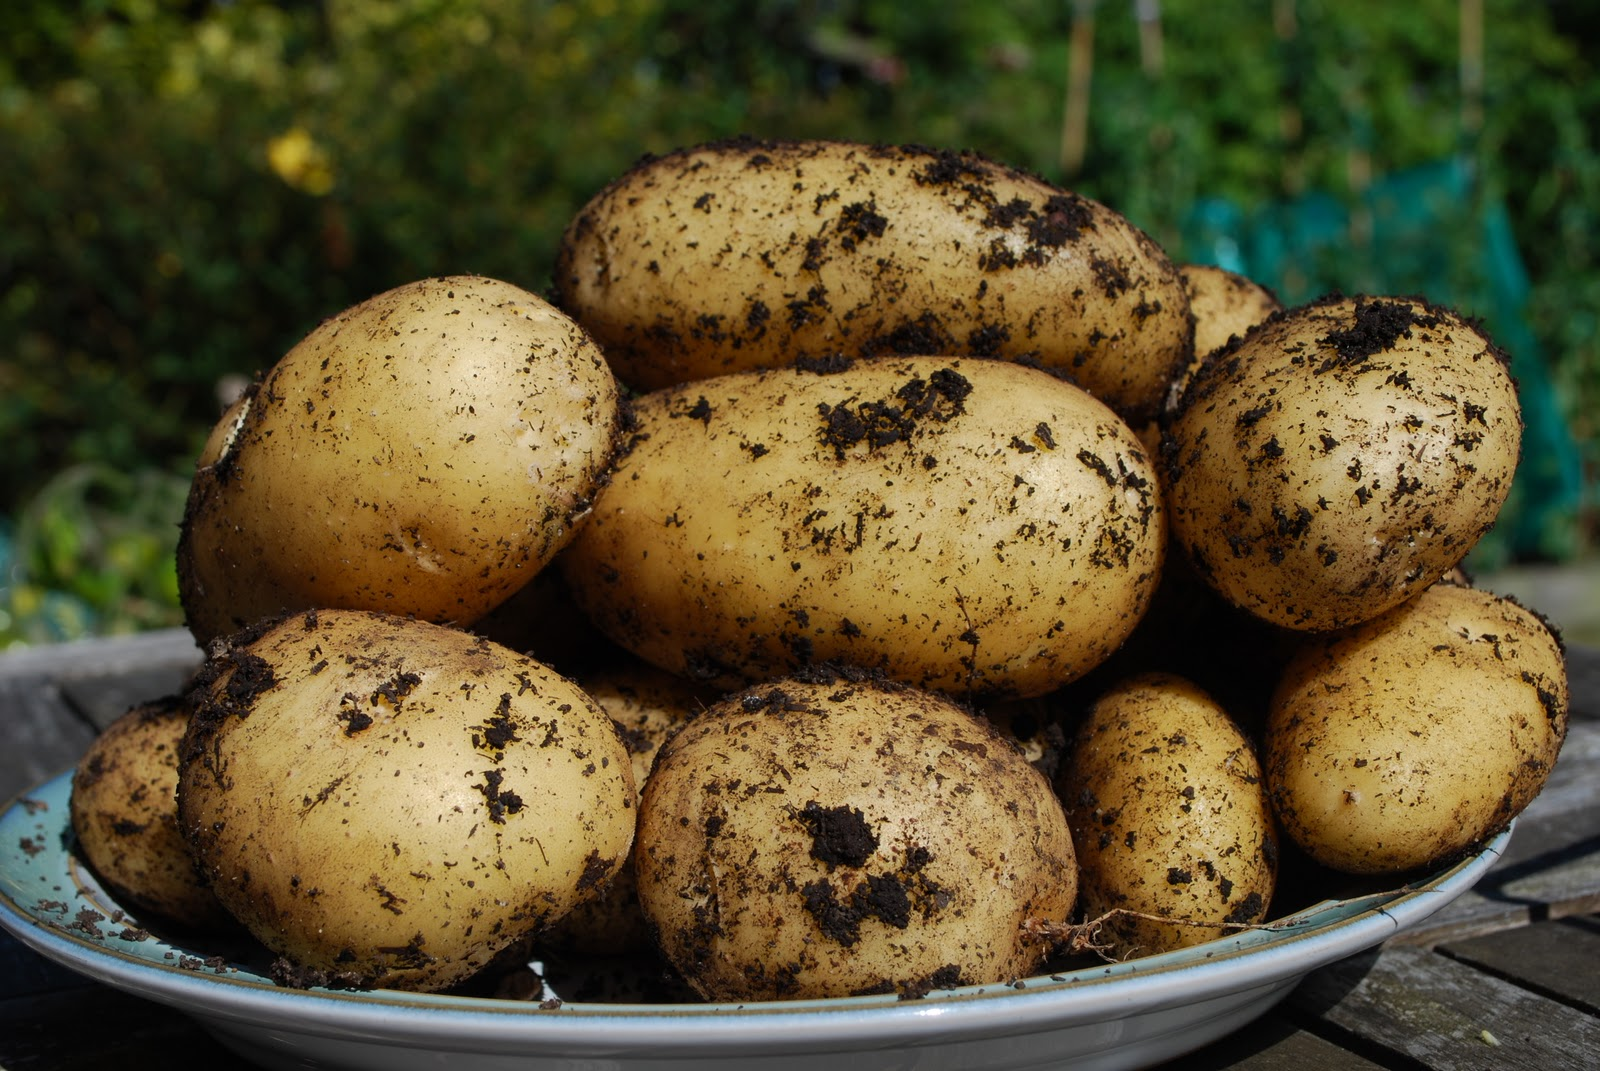 Town and Country Blog: Christmas dinner - veg grower style!